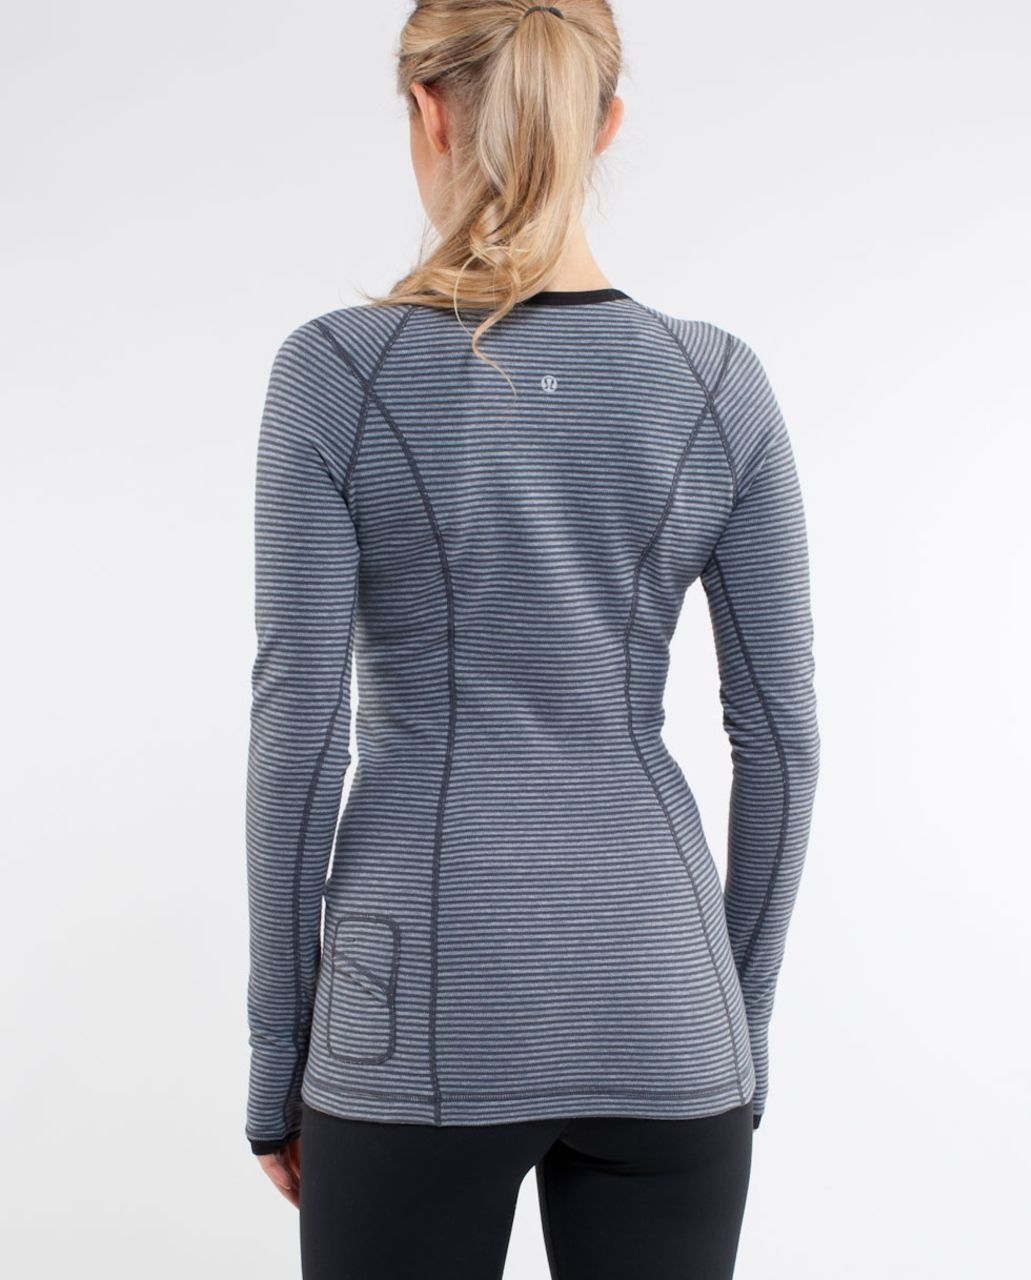 Lululemon Run:  Turn Around Long Sleeve - Deep Coal Mini Check